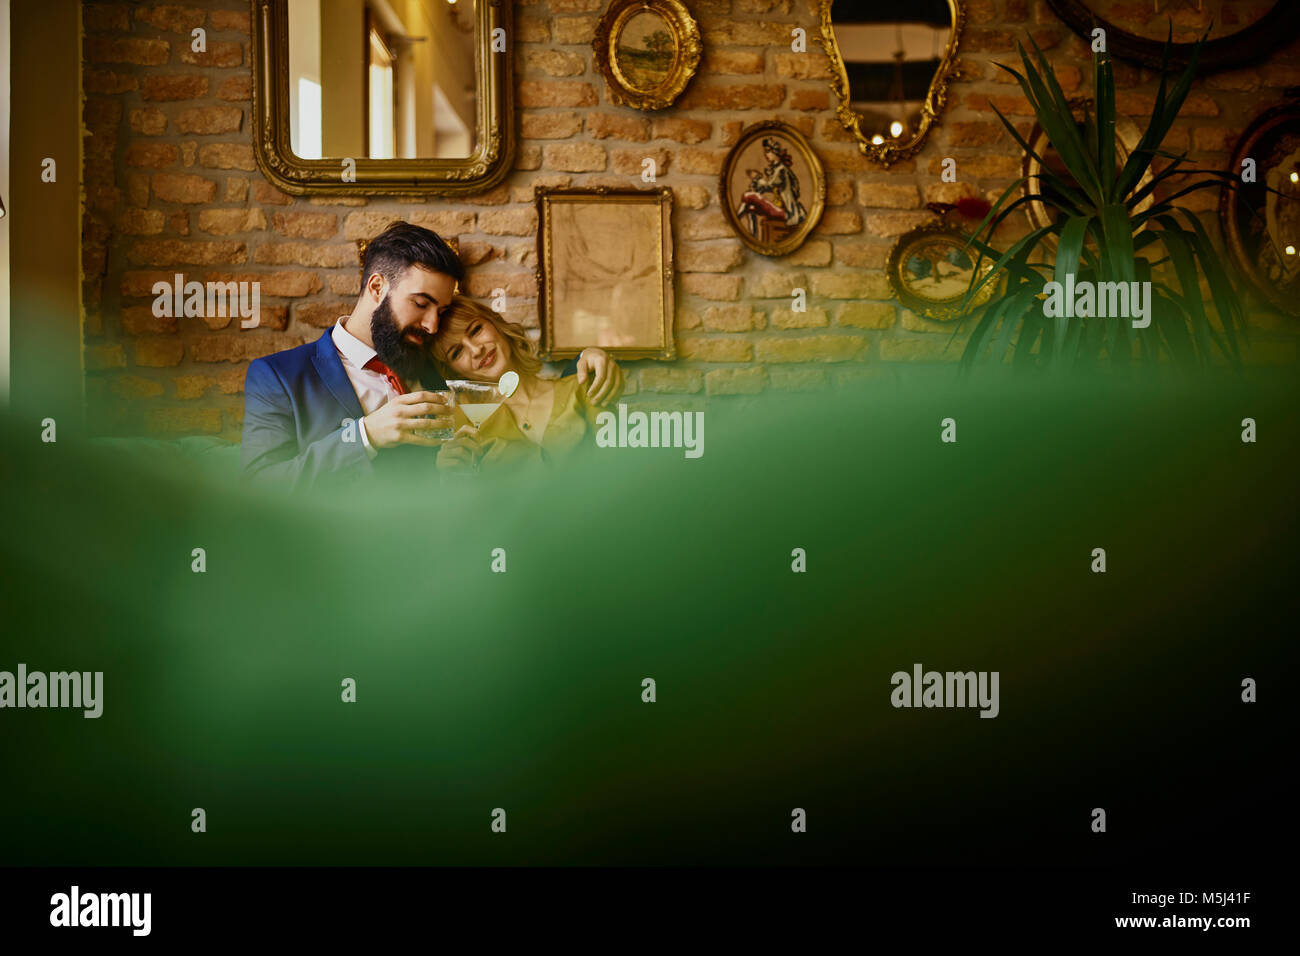 Elegant couple with drinks sitting on couch hugging - Stock Image